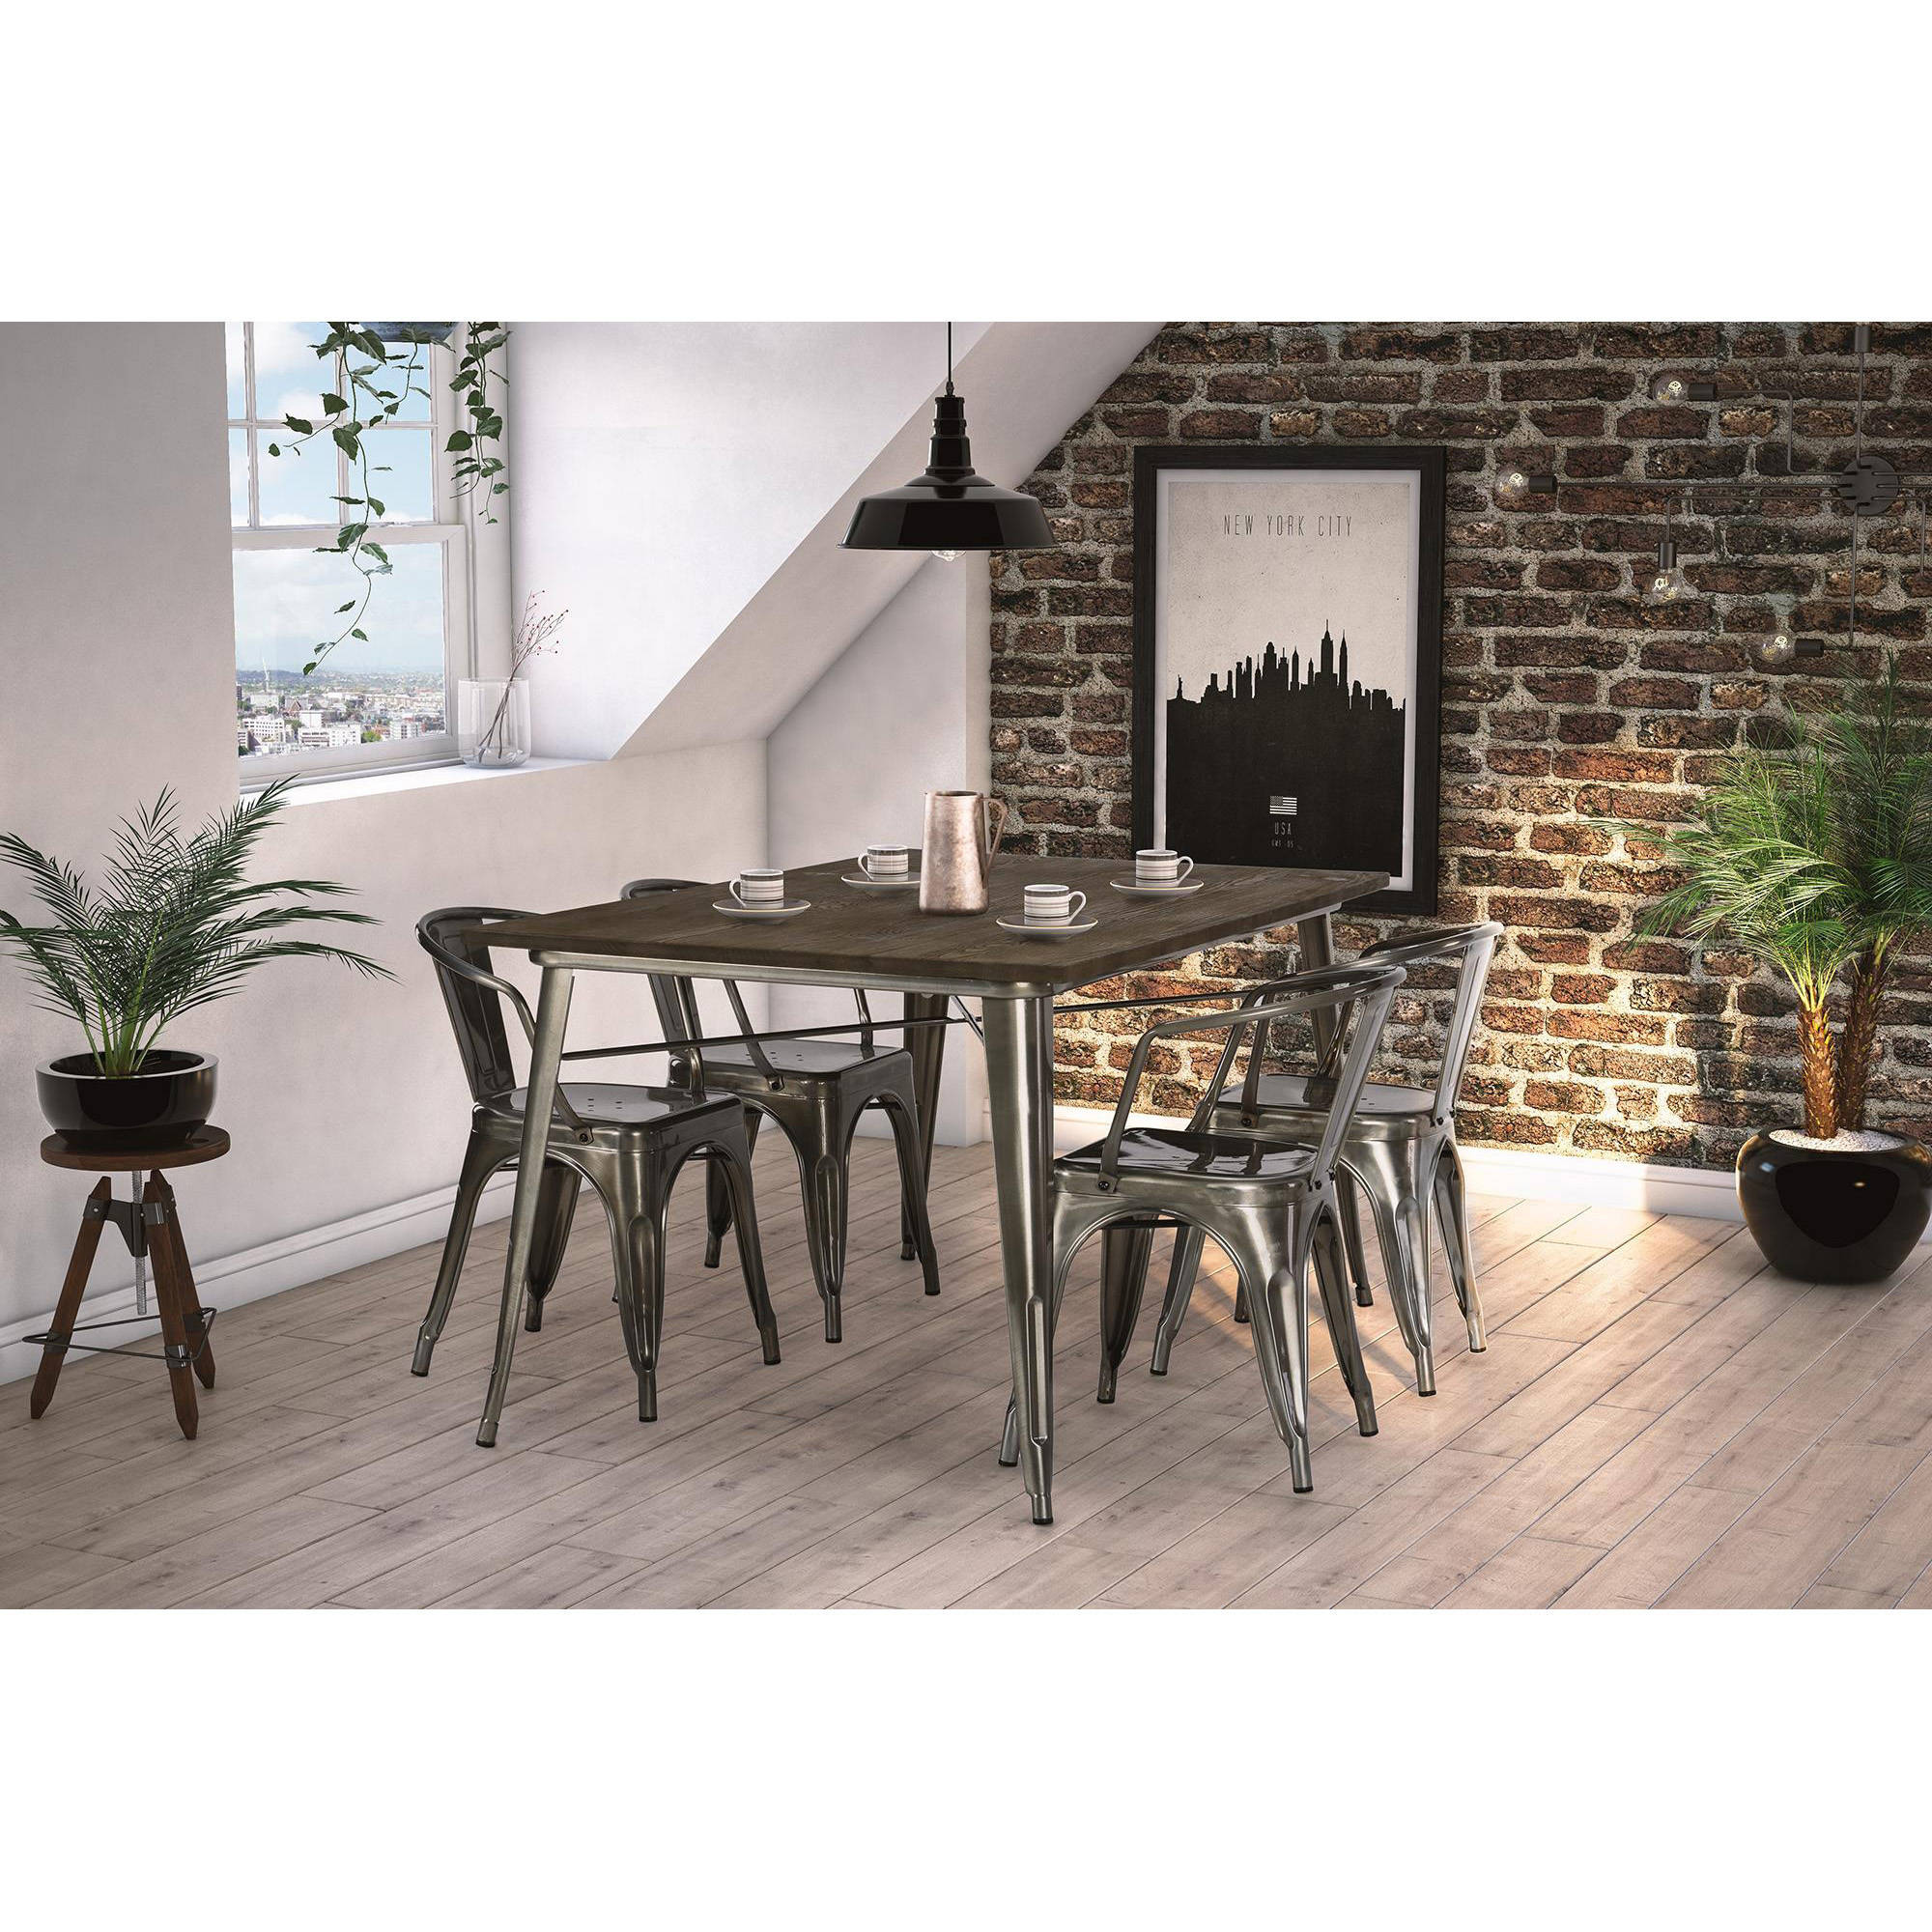 DHP Fusion Dining Table, Rectangular, Antique Gun Metal/Wood